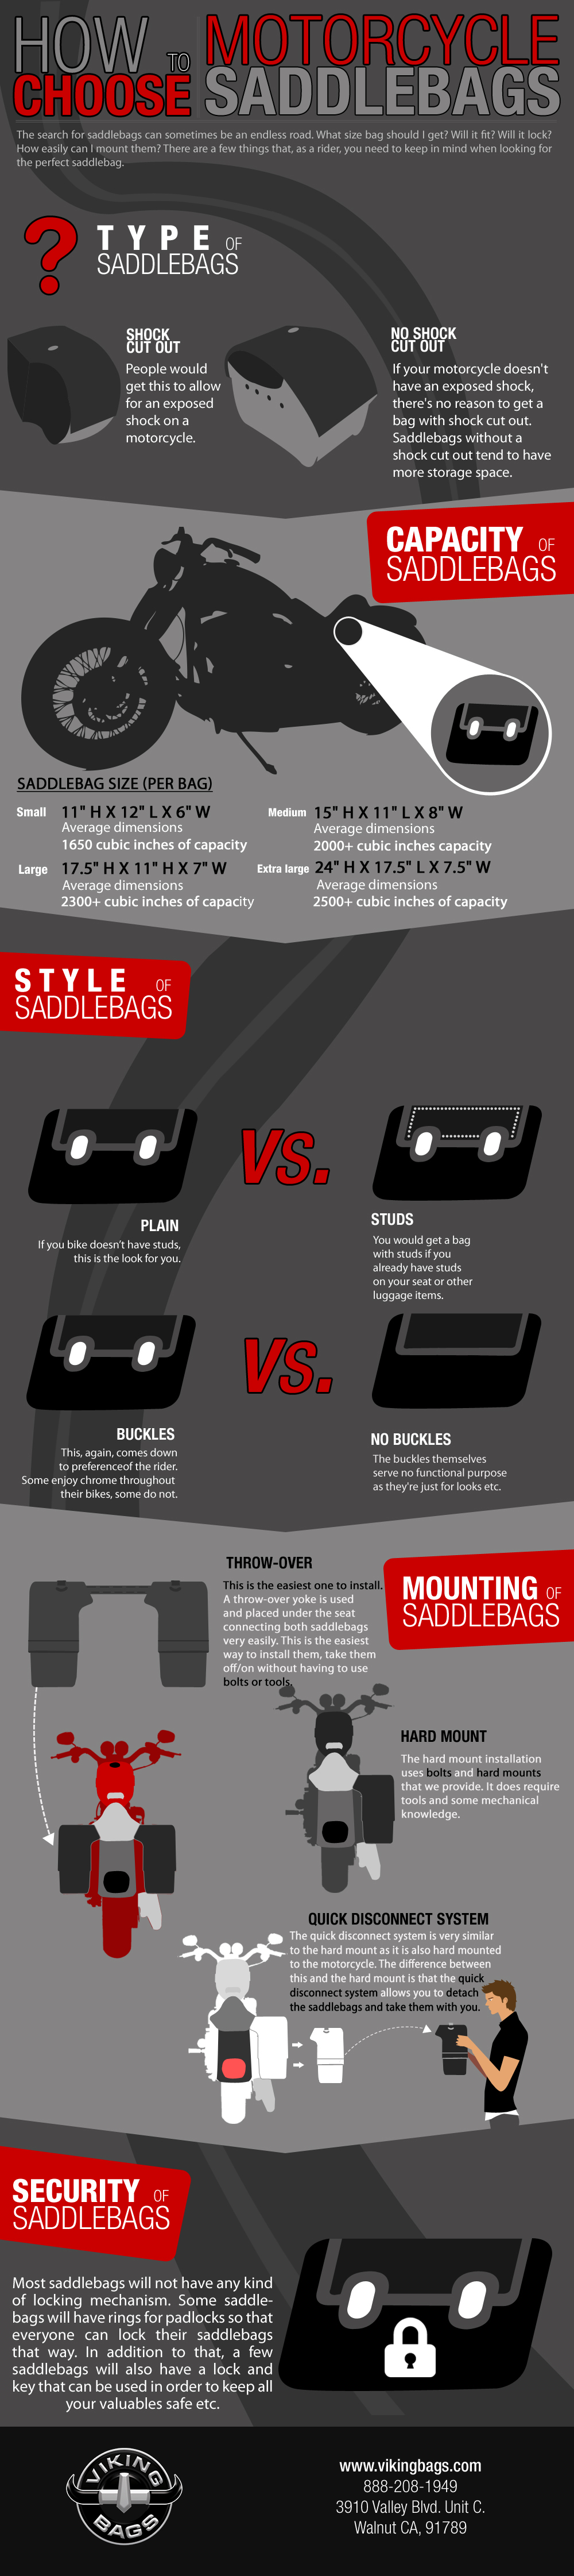 How To Choose Motorcycle Saddlebgas